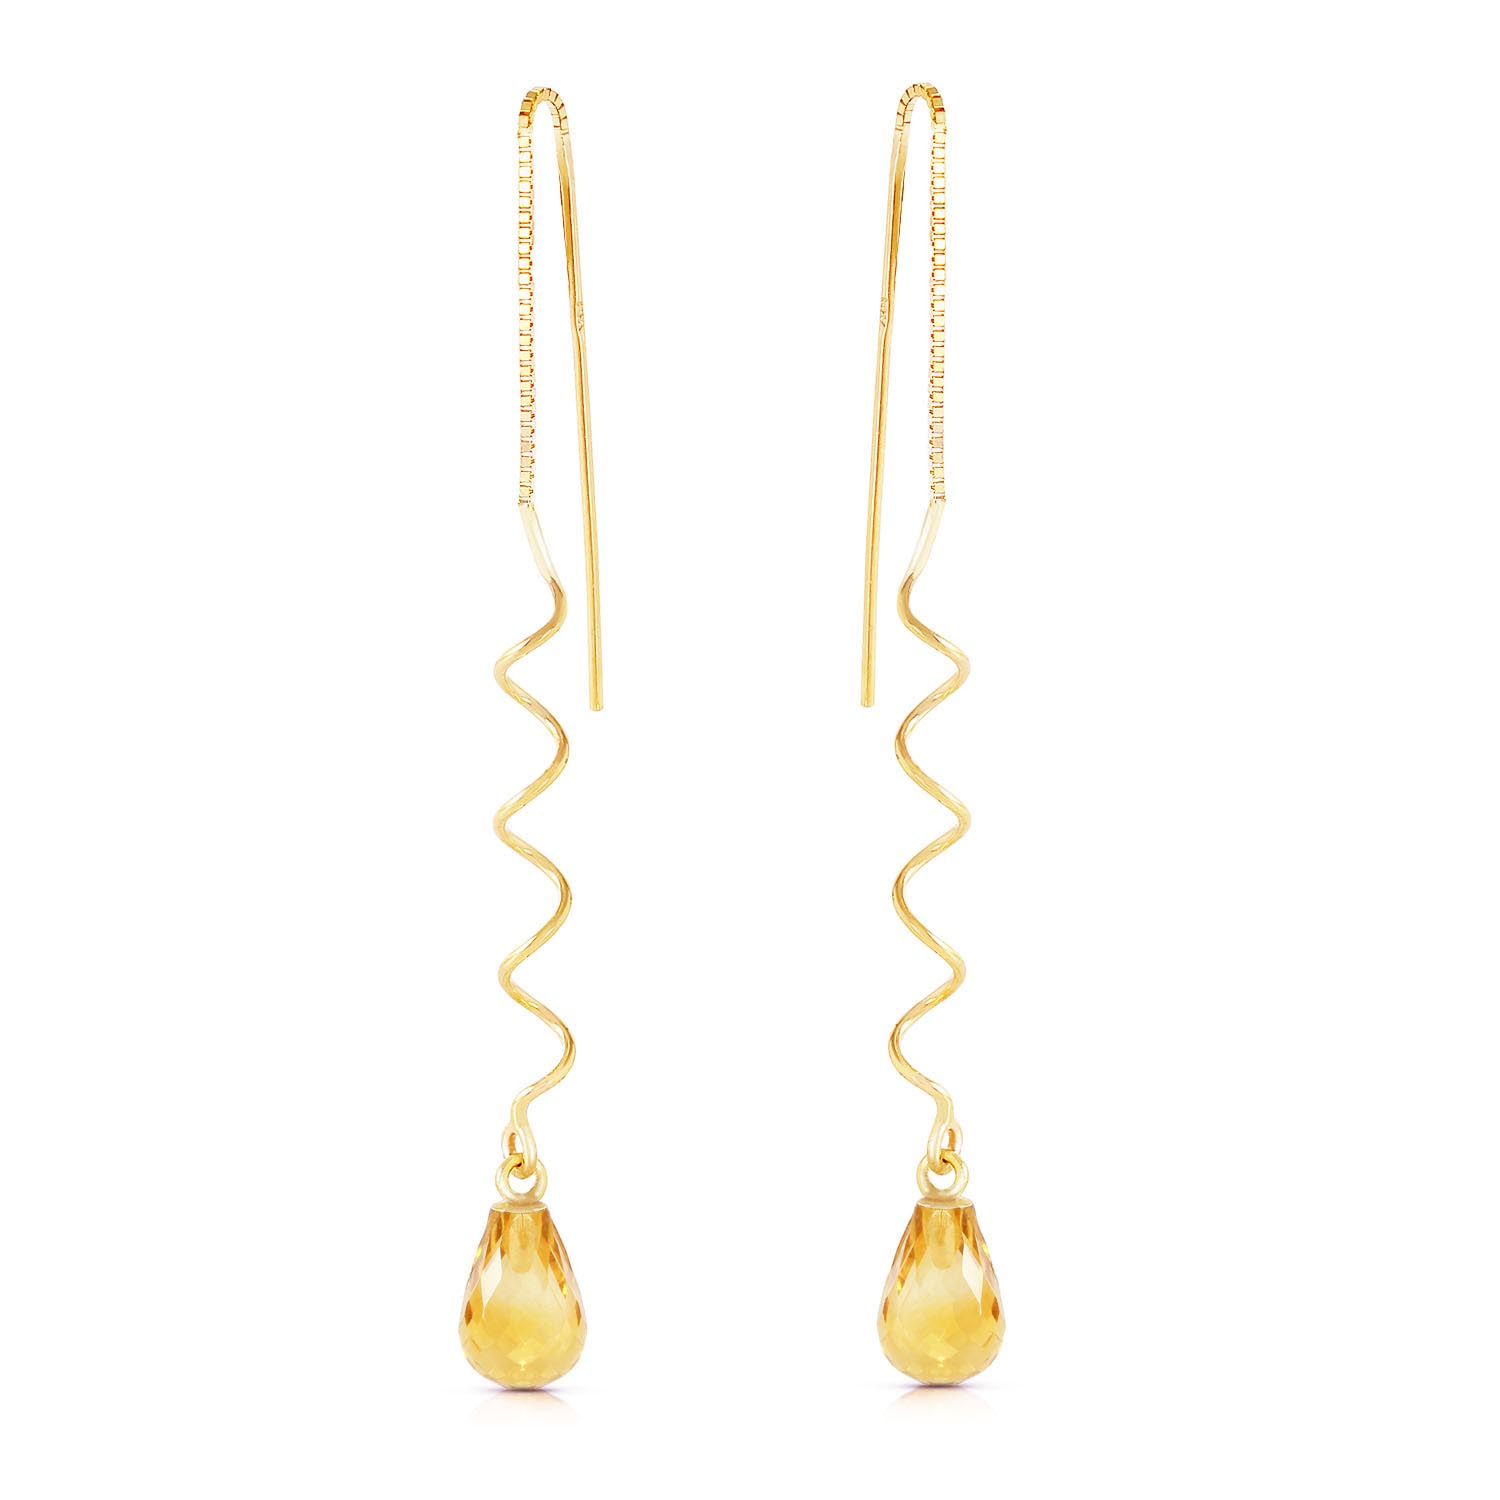 Citrine Spiral Scintilla Earrings 3.3 ctw in 9ct Gold